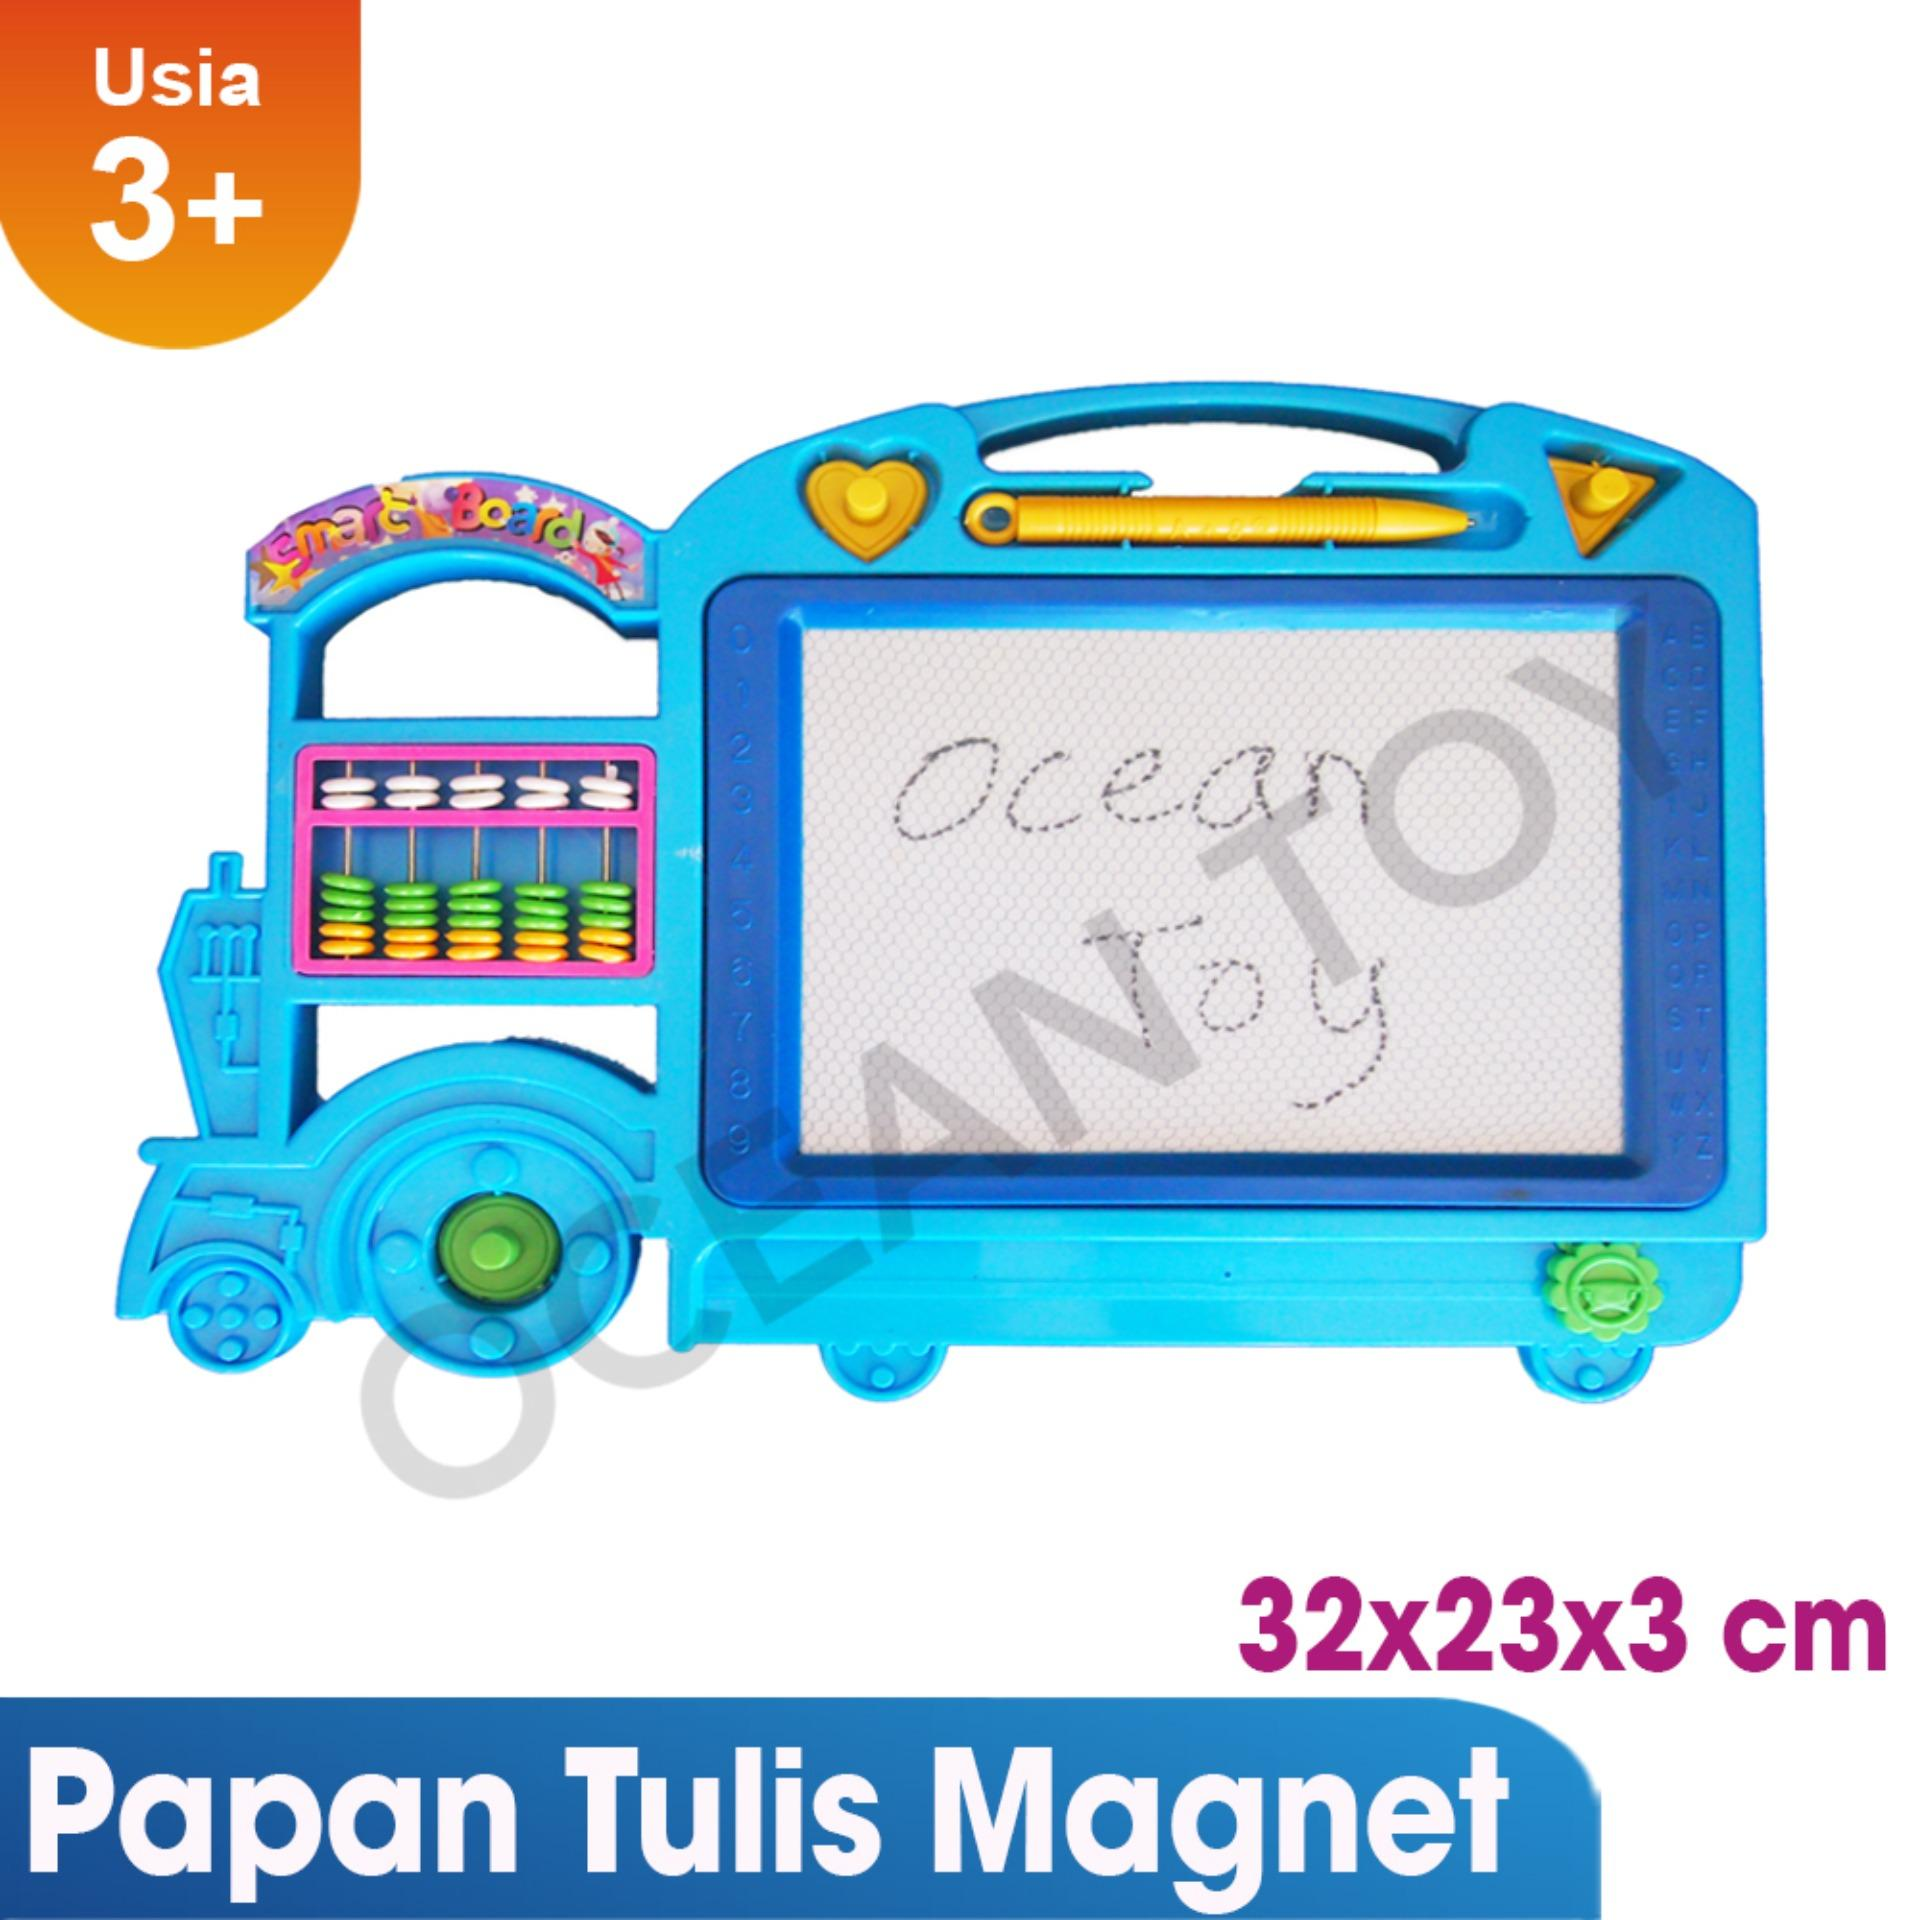 Harga Cat Papan Tulis Kapur Mainan Papan Tulis Fbl Papan Tulis Magnet Magic Board Mainan Edukasi Anak Oct0035 Warna Random